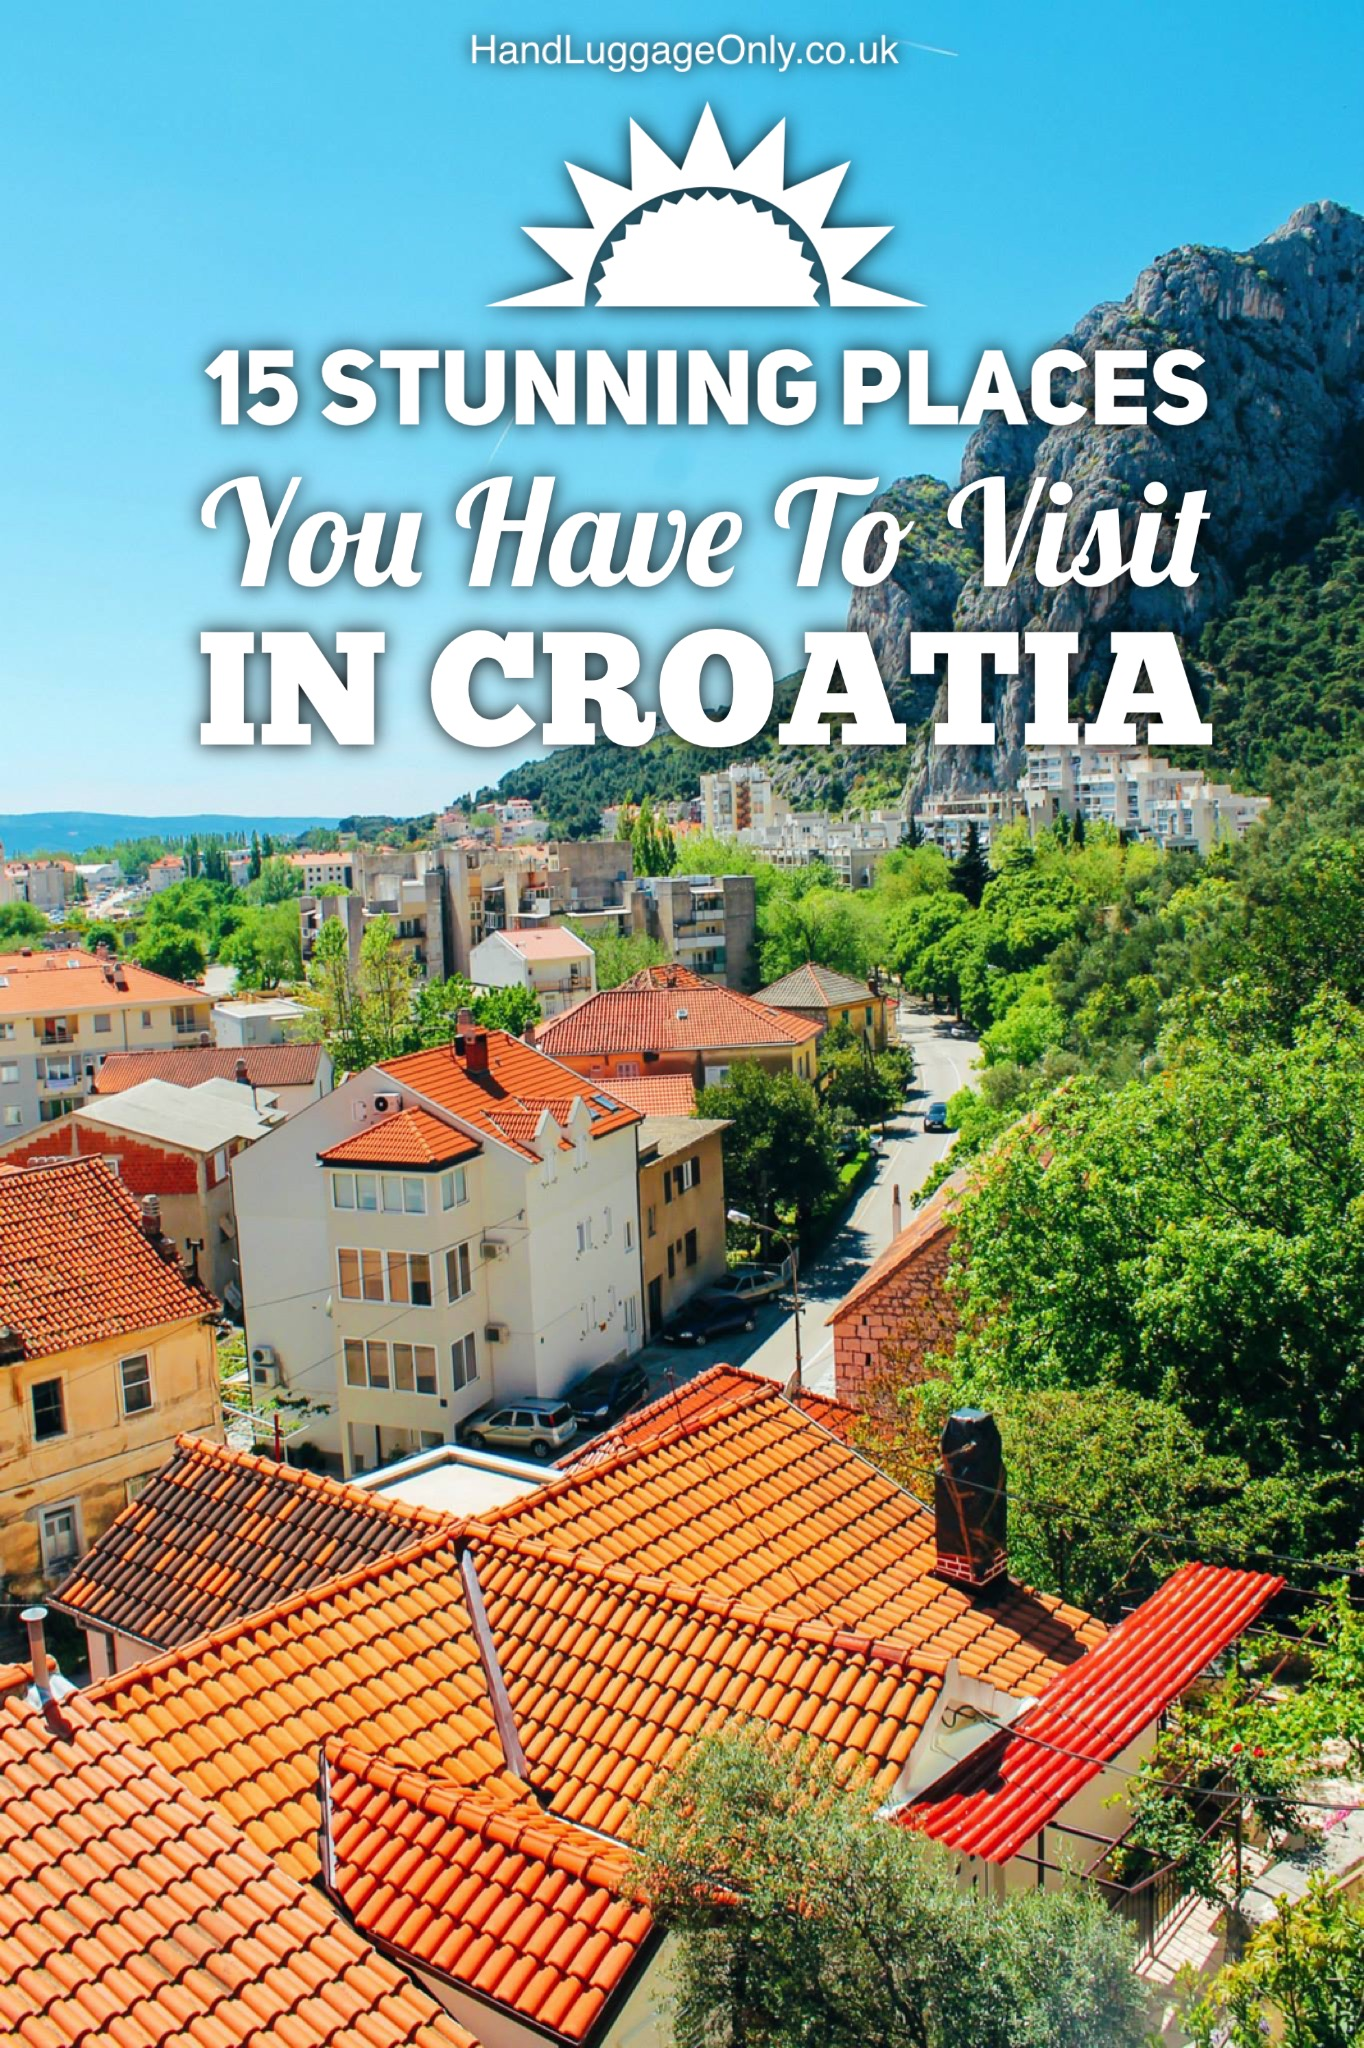 15 Stunning Places You Have To Visit In Croatia (10)